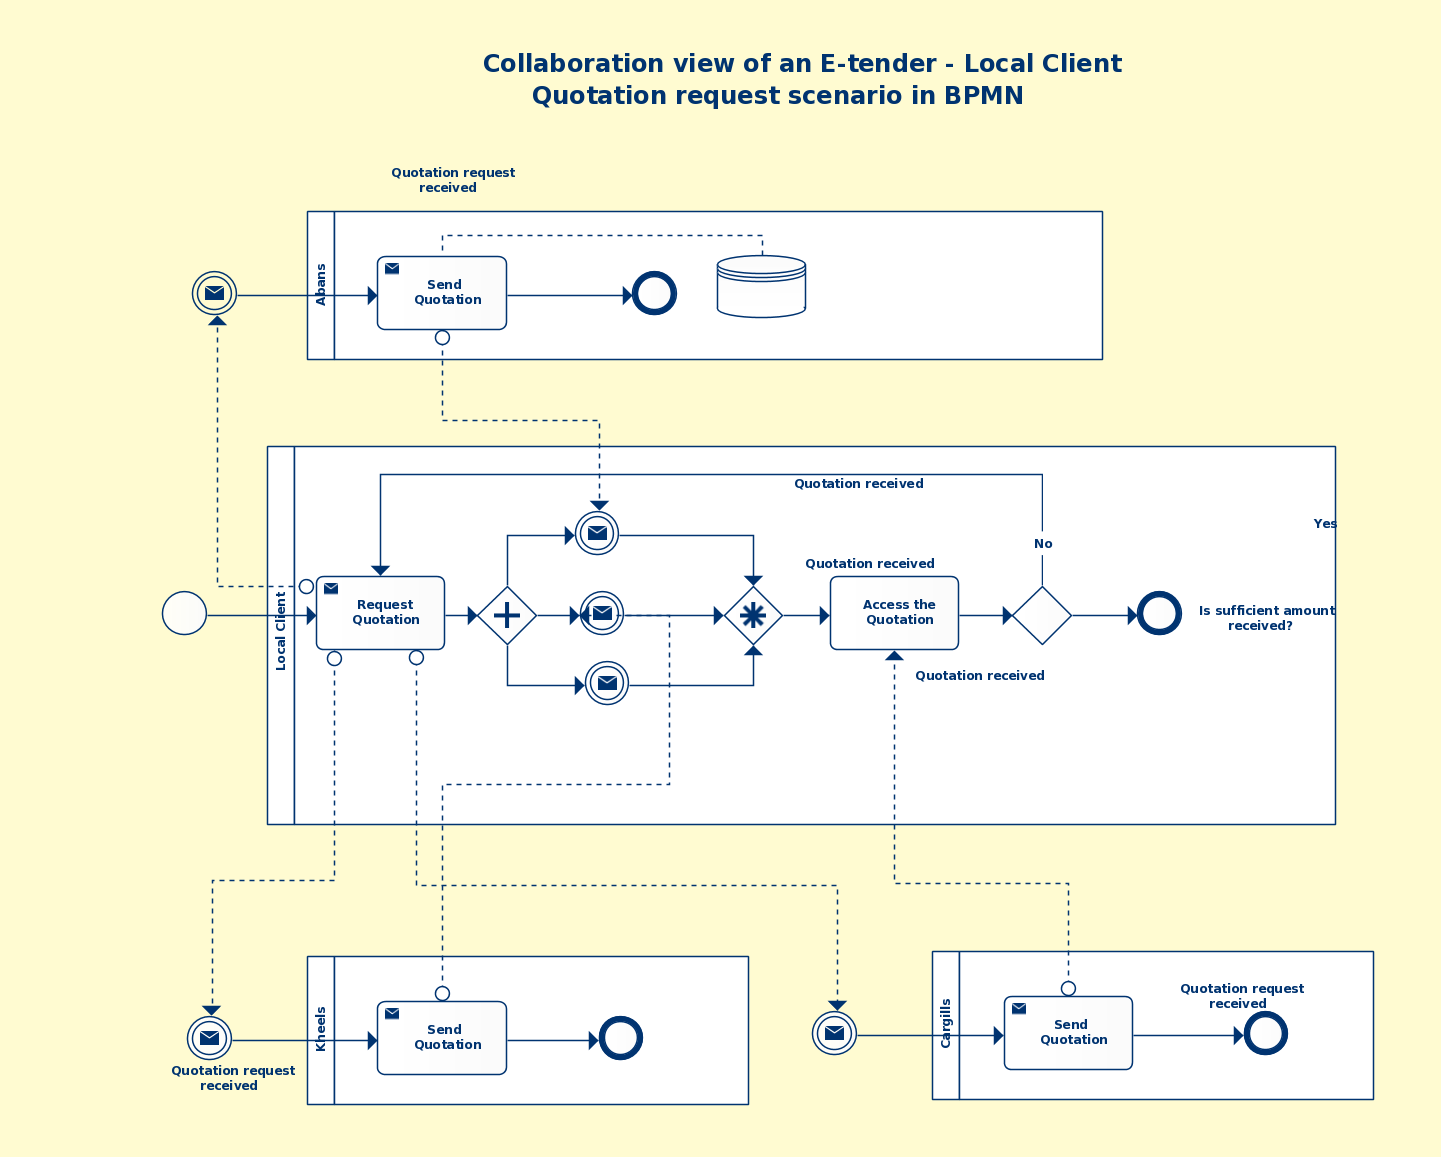 bpmn templates to quickly model business processes free download - Bpmn Modeling Tool